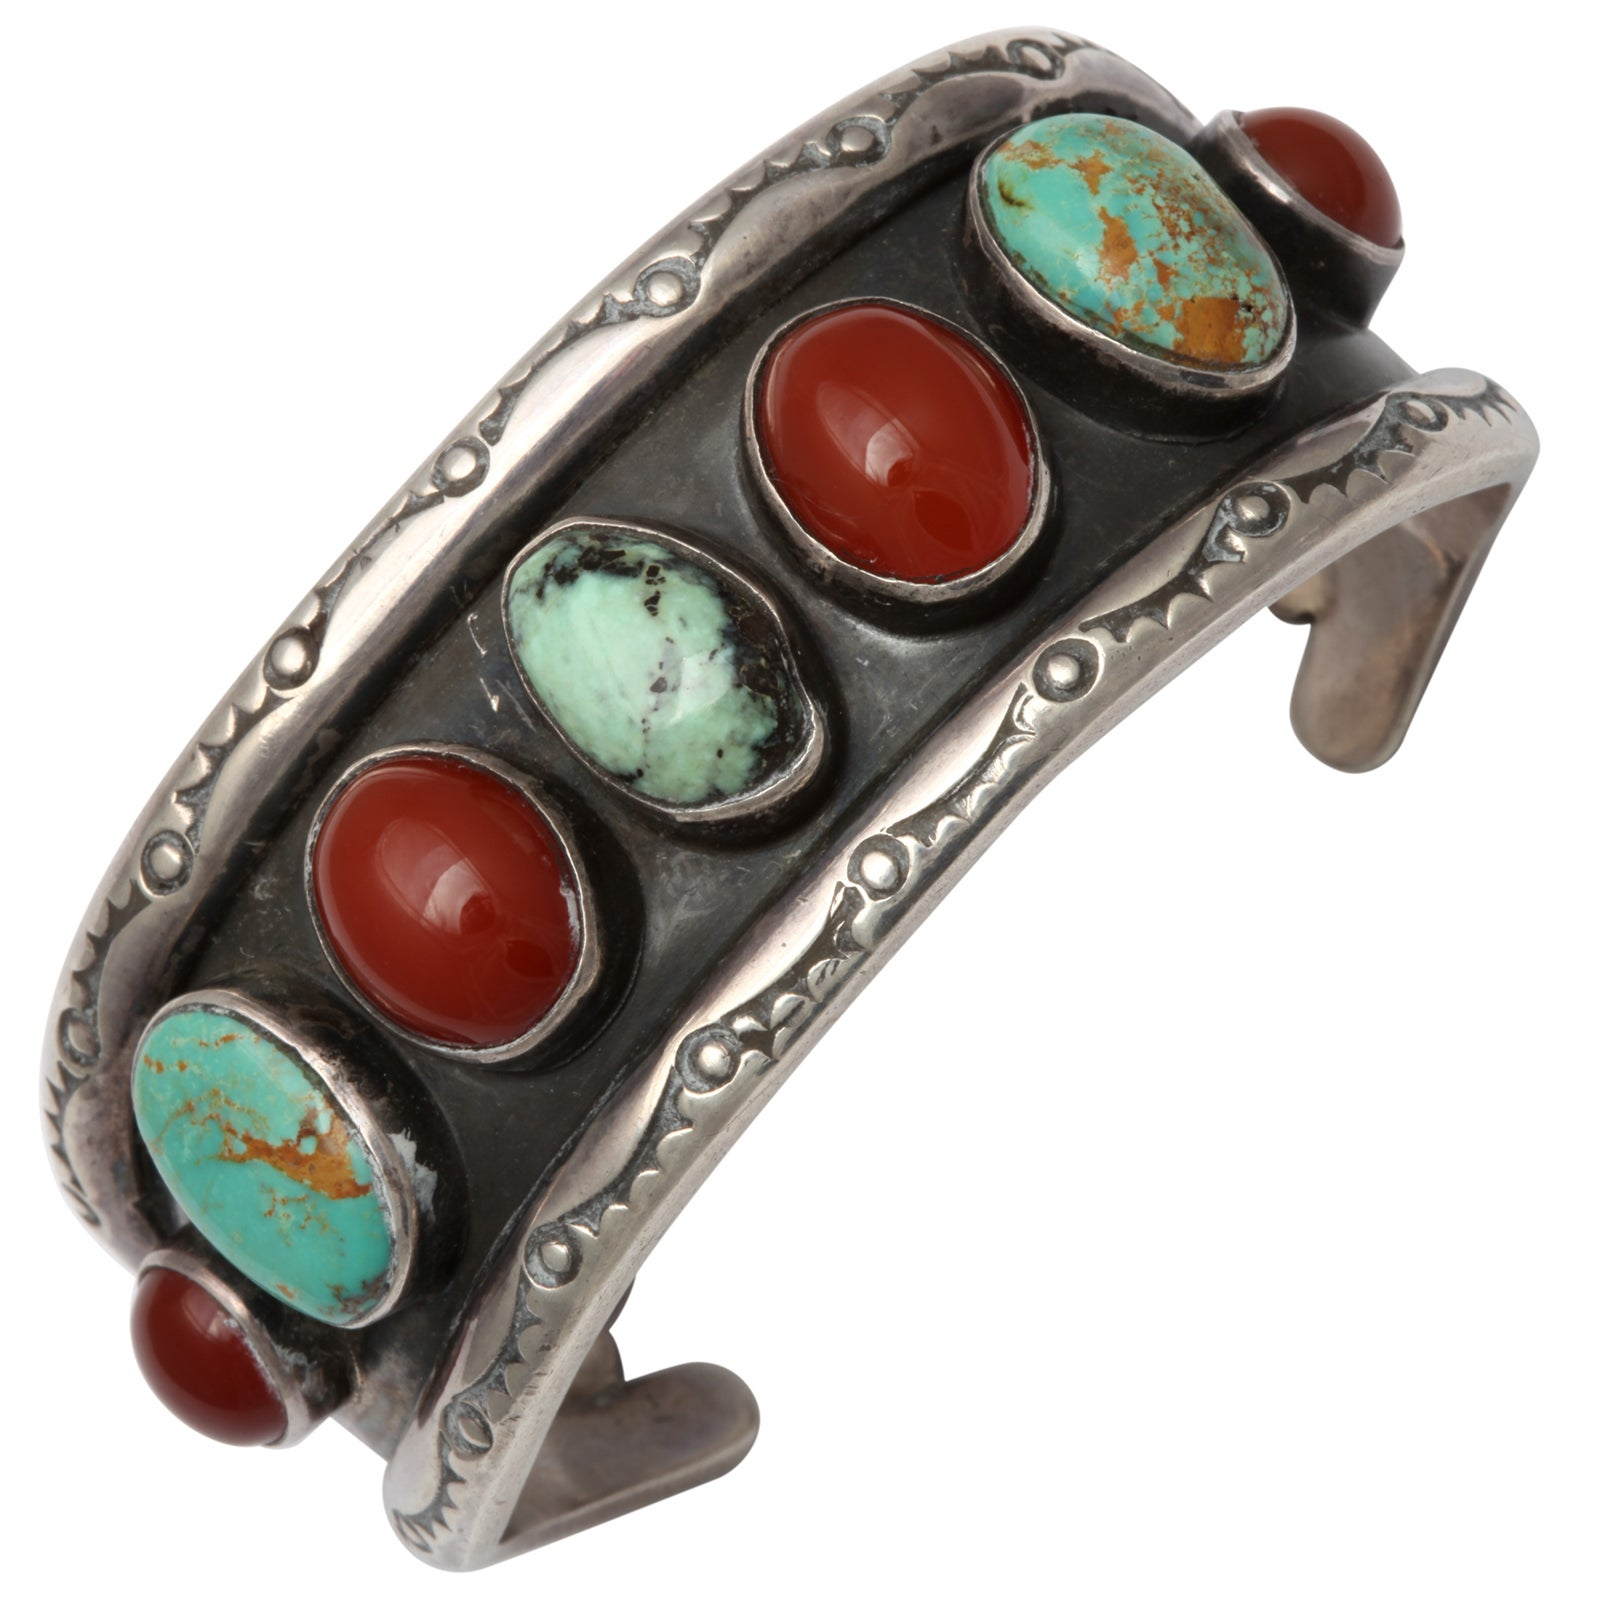 Old Navajo Cuff of Matrix Turquoise and Carnelian For Sale